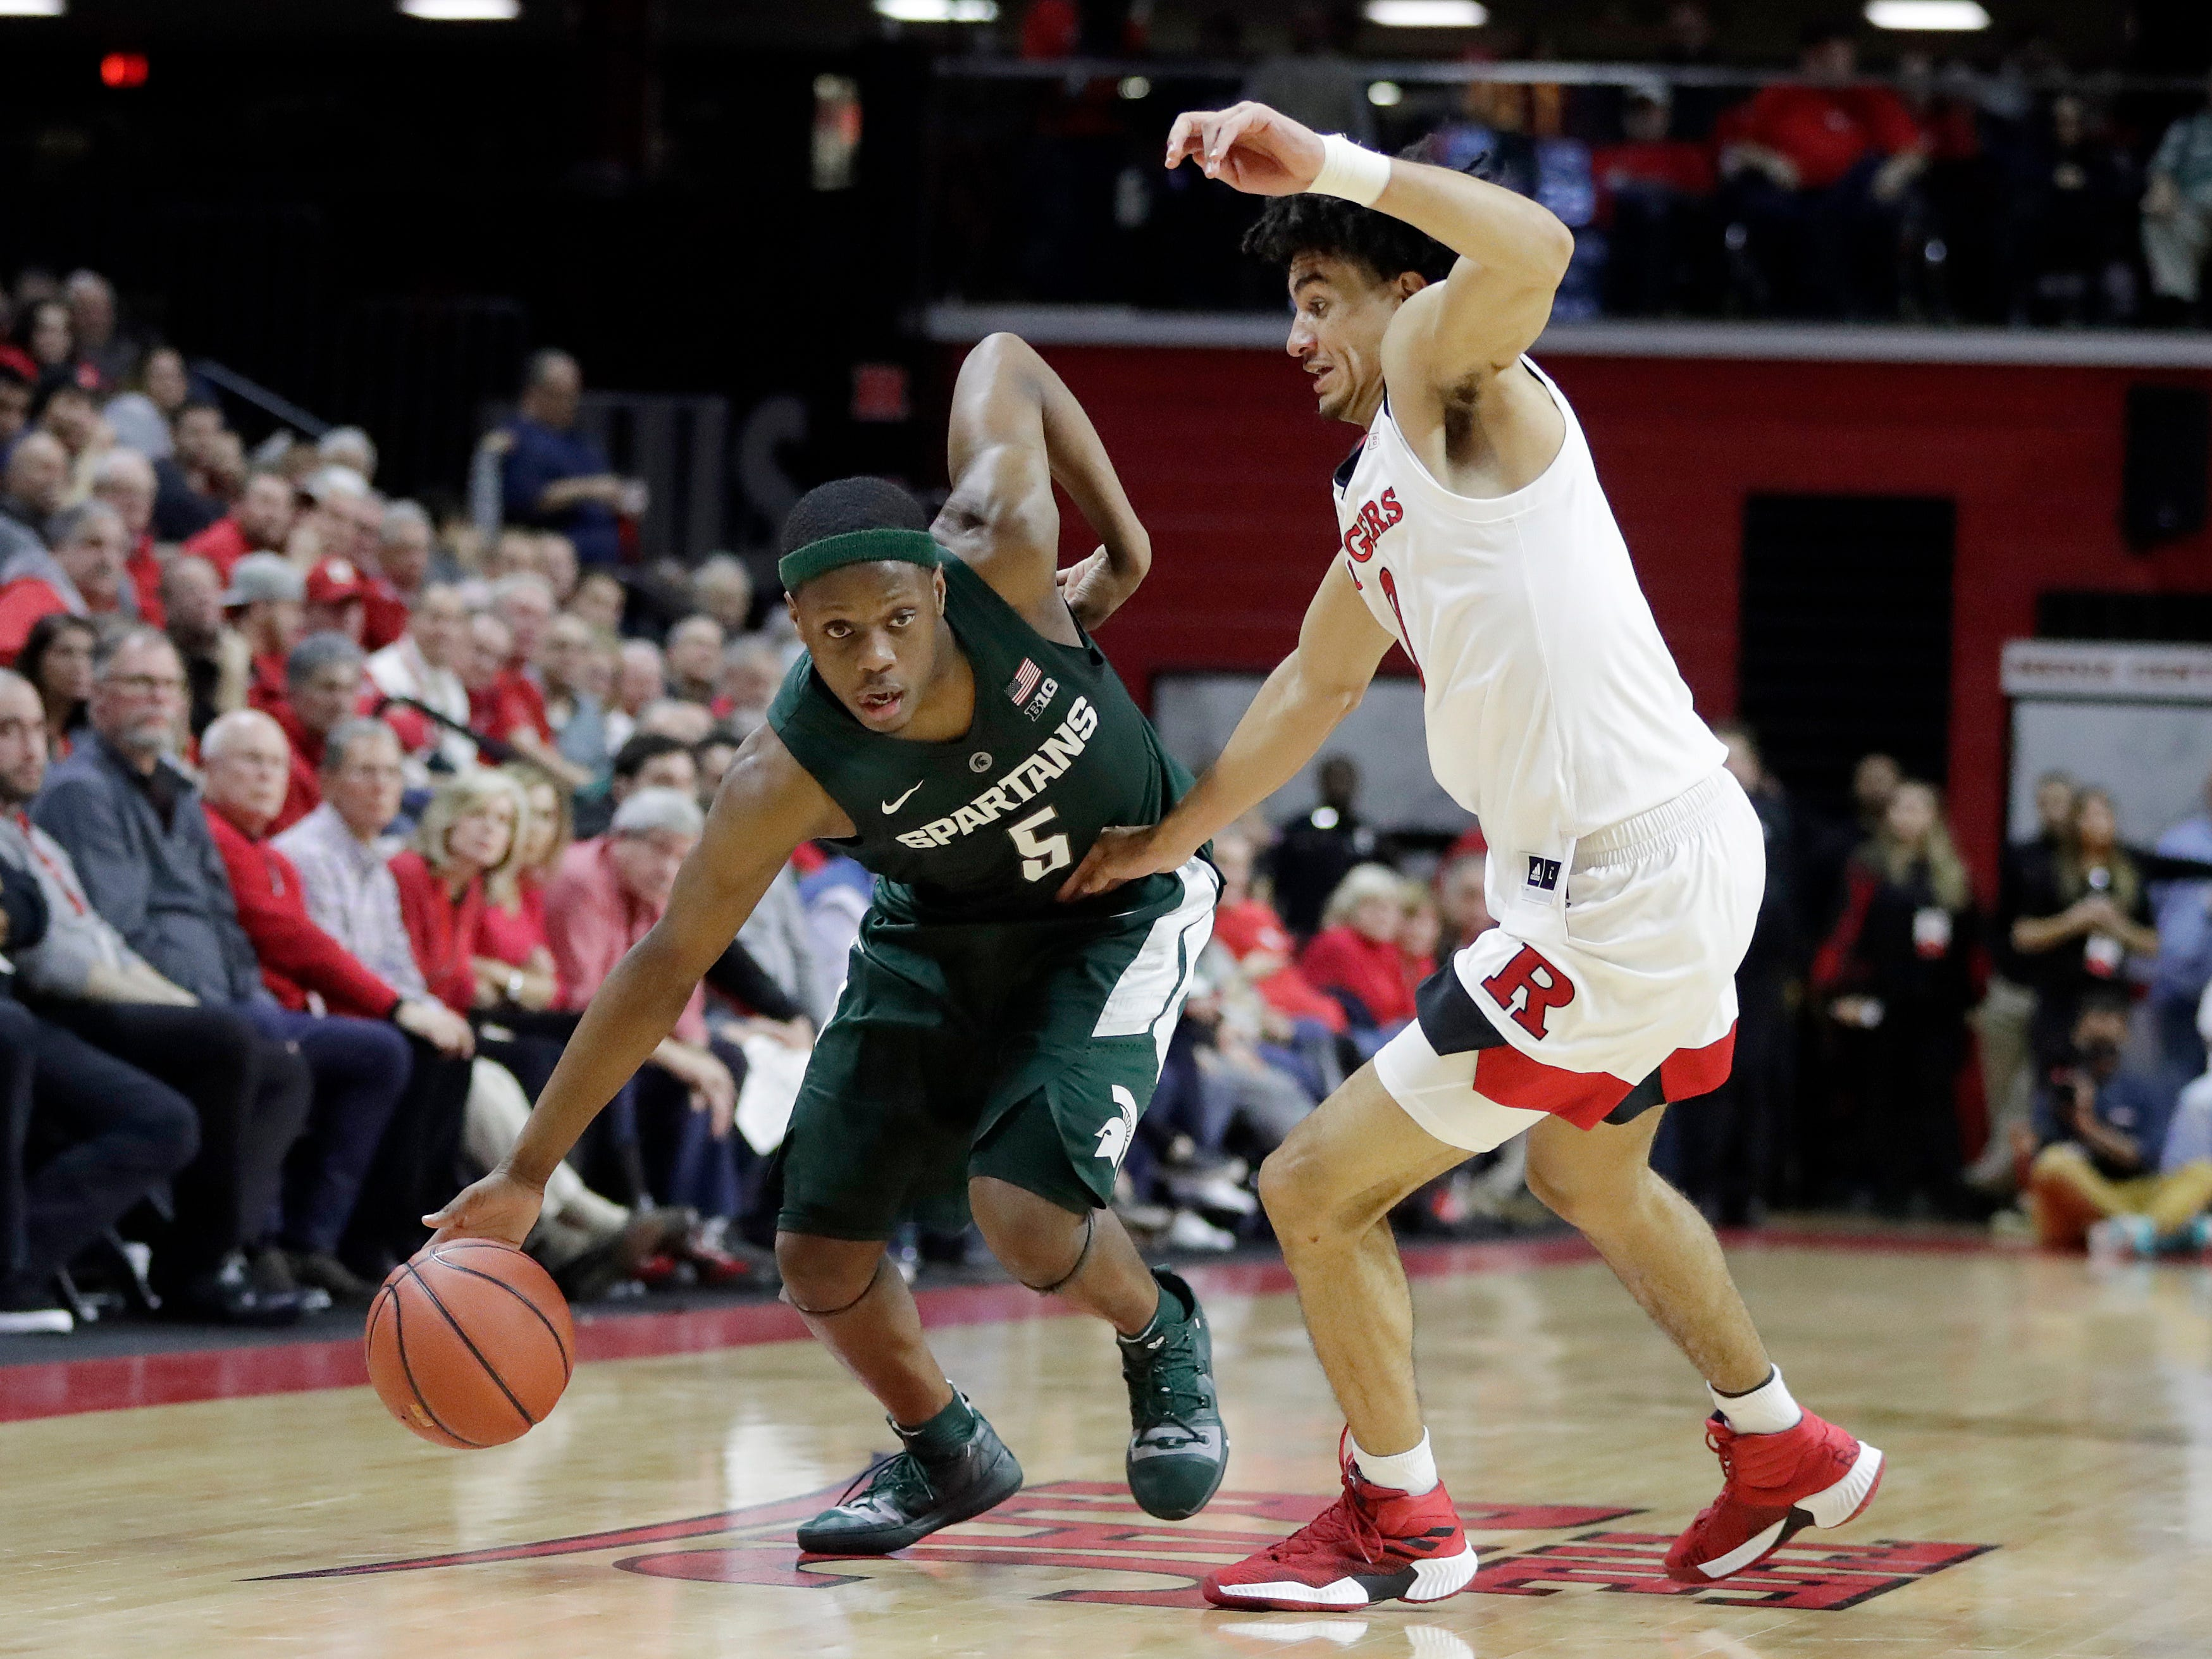 Michigan State guard Cassius Winston (5) drives against Rutgers guard Geo Baker during the second half of an NCAA college basketball game, Friday, Nov. 30, 2018, in Piscataway, N.J.